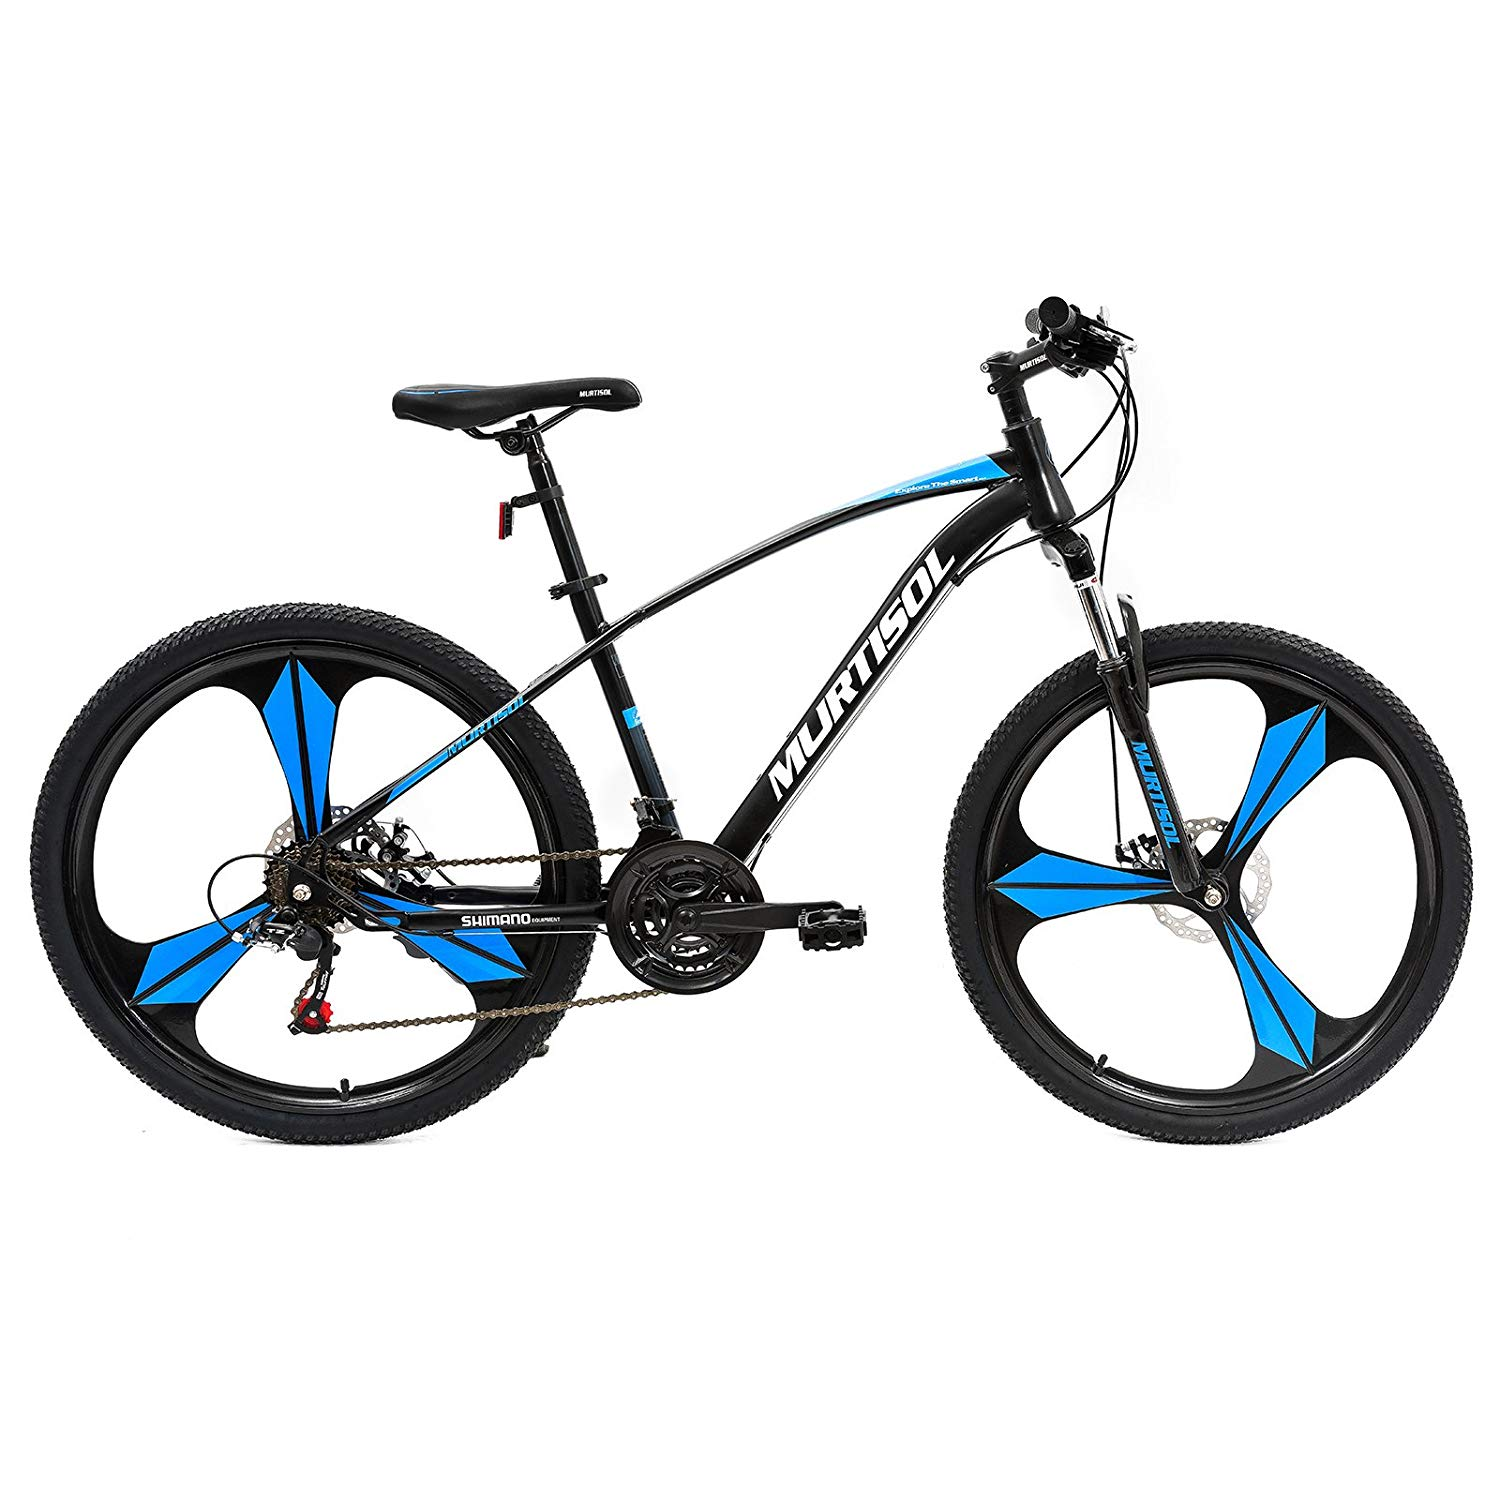 1500x1500 Murtisol Aluminum Mountain Bikes With Mag Wheels